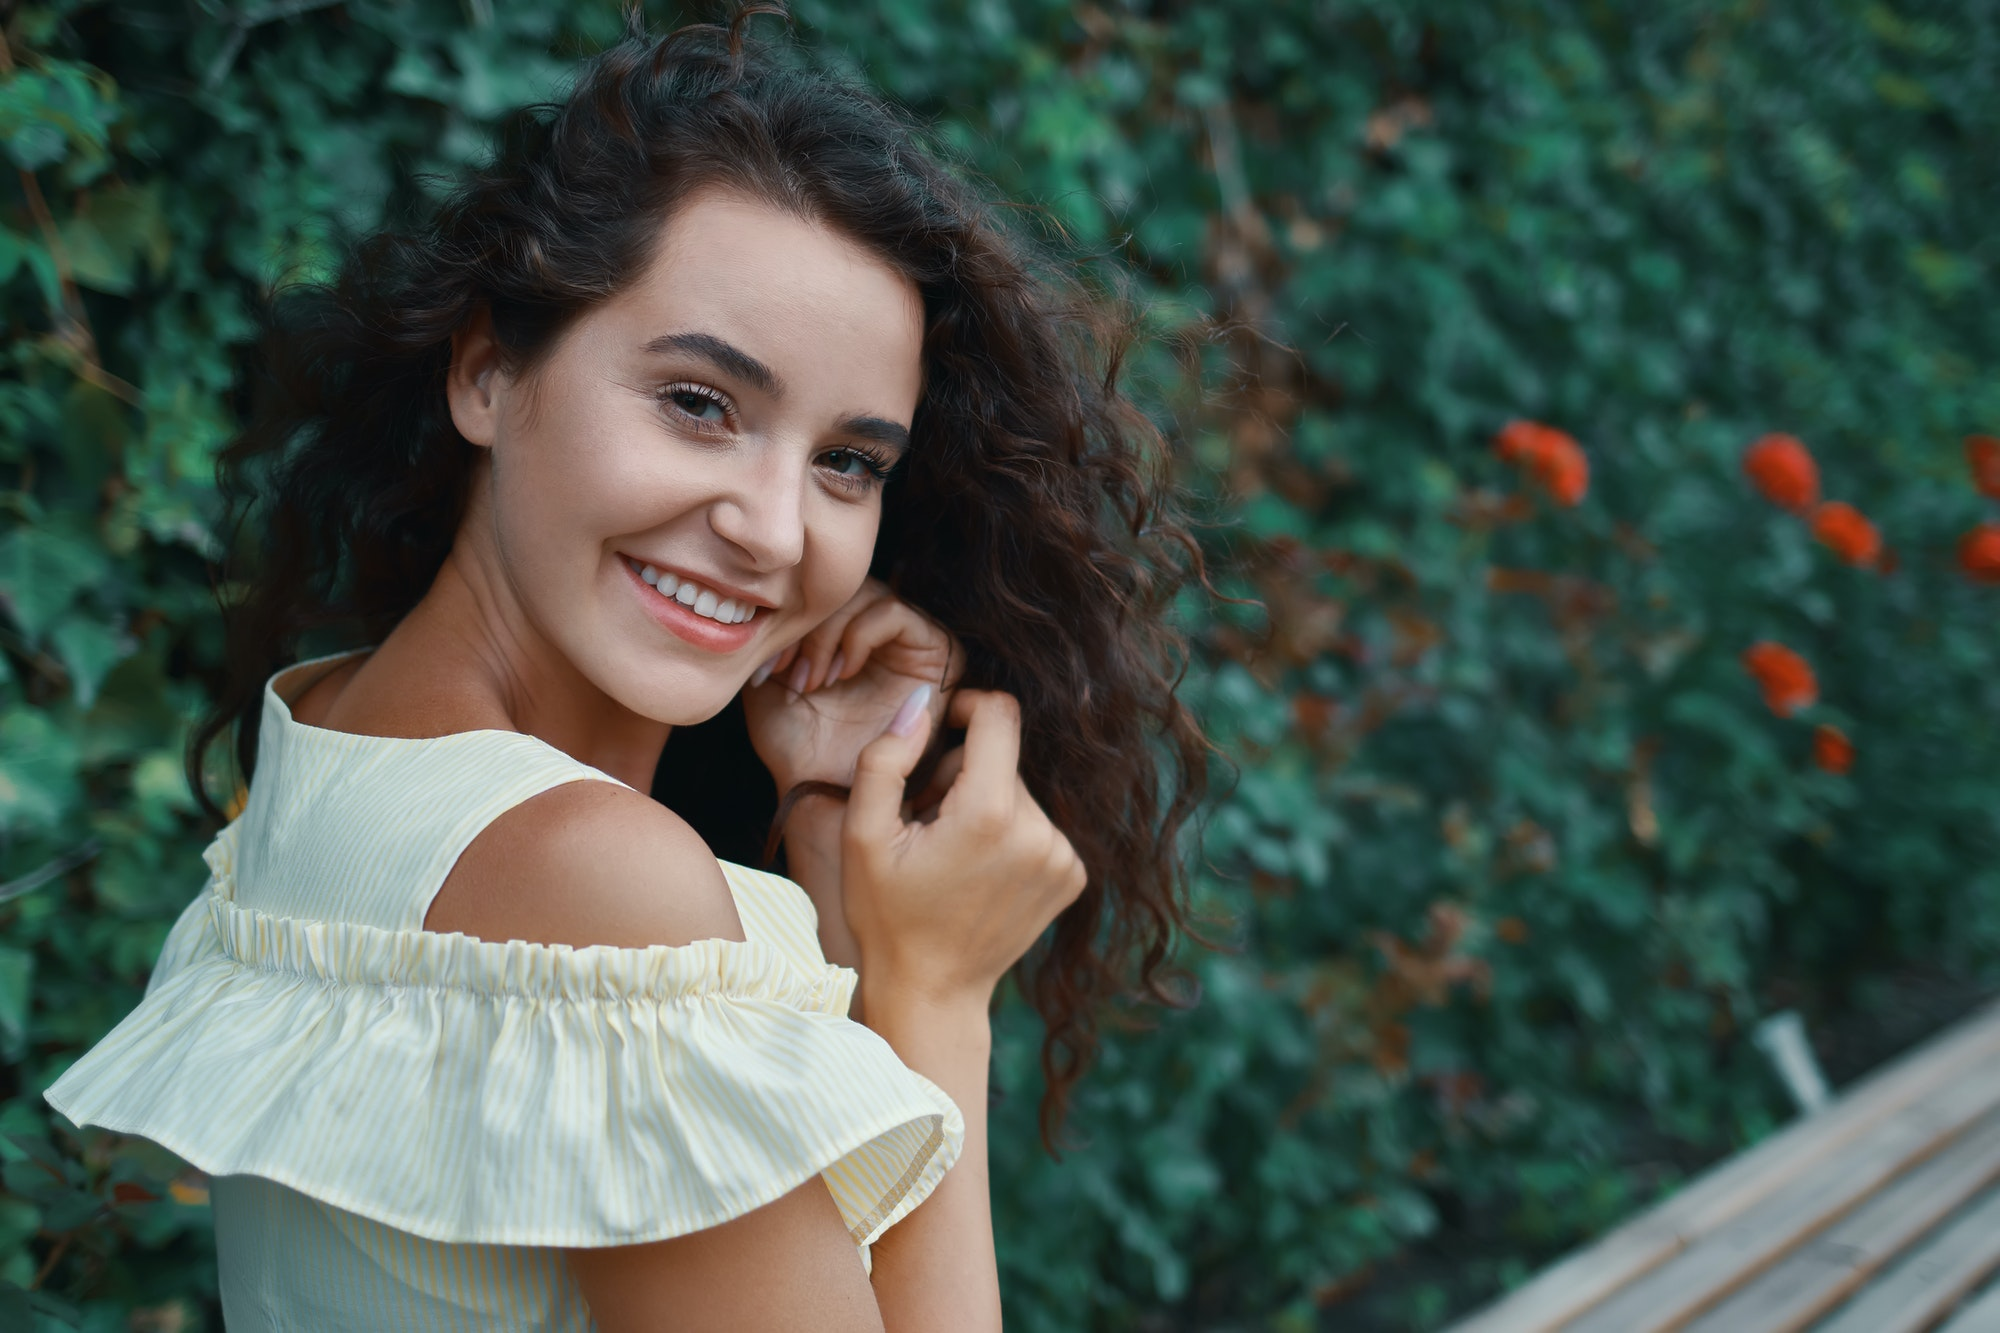 Romantic young woman with an adorable smile